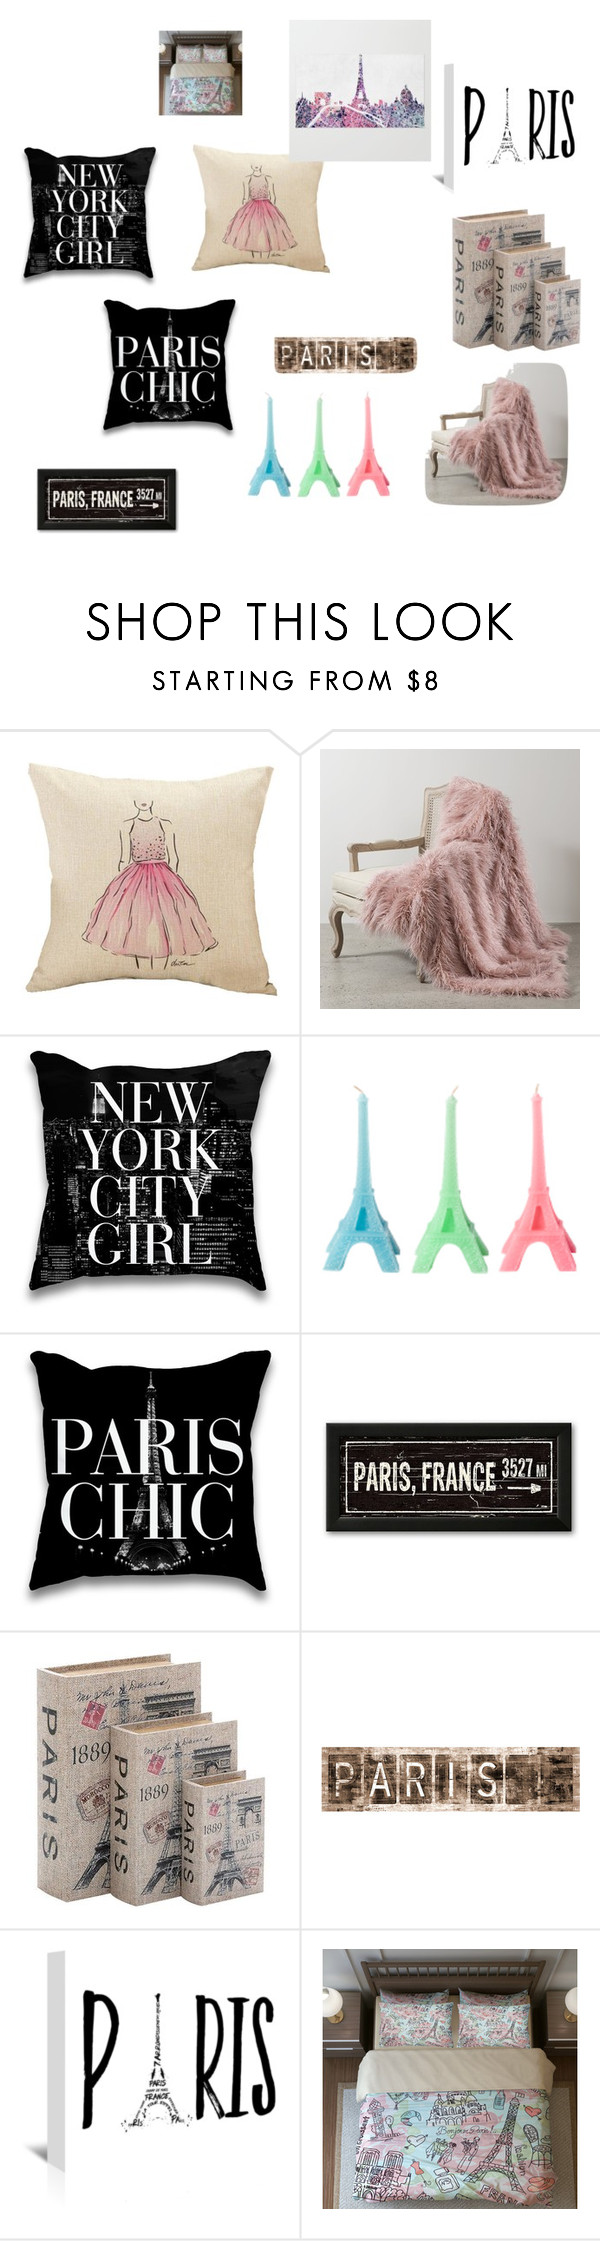 """""""paris"""" by haileyjbault on Polyvore featuring interior, interiors, interior design, home, home decor, interior decorating, Best Home Fashion, Home Decorators Collection and Leftbank Art"""